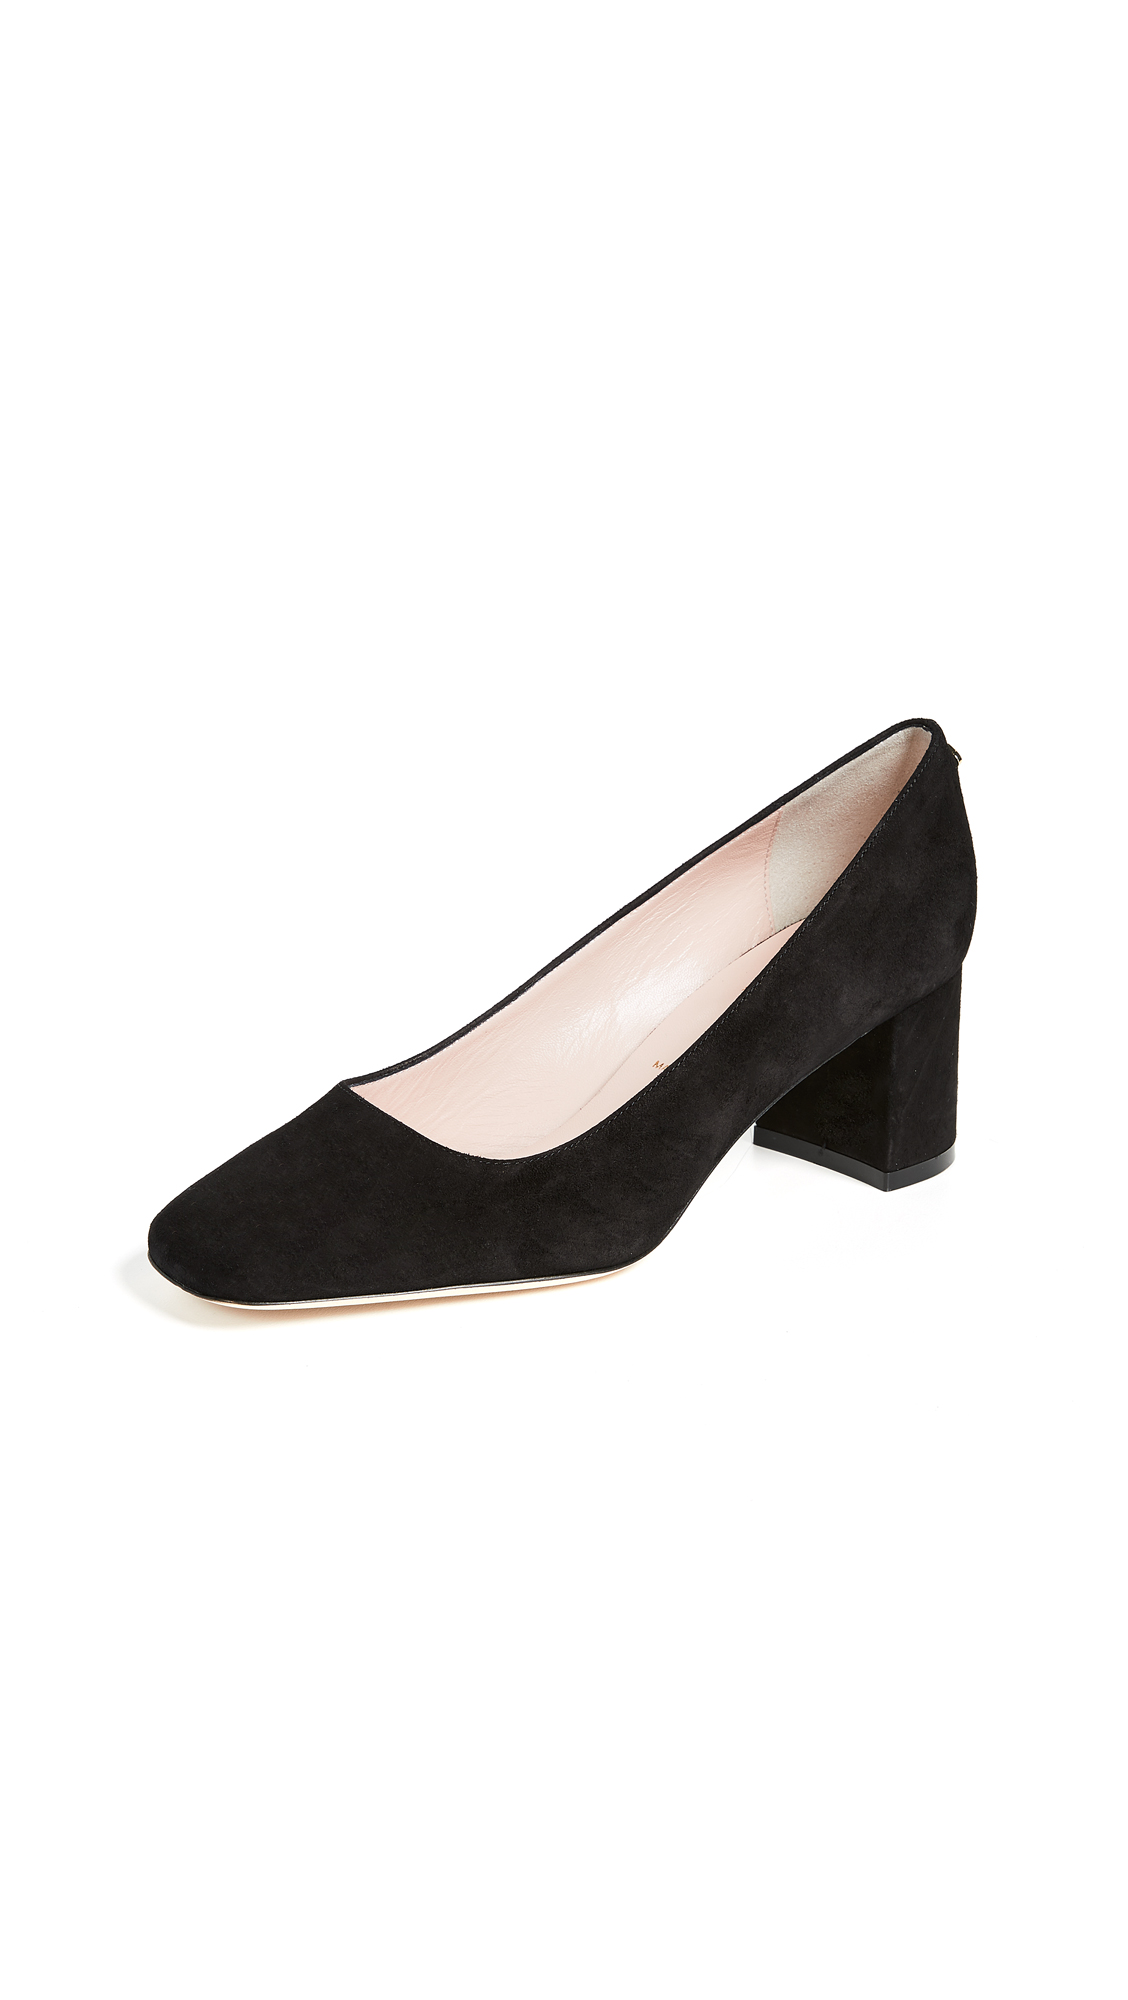 Kate Spade New York Kylah Square Toe Pumps